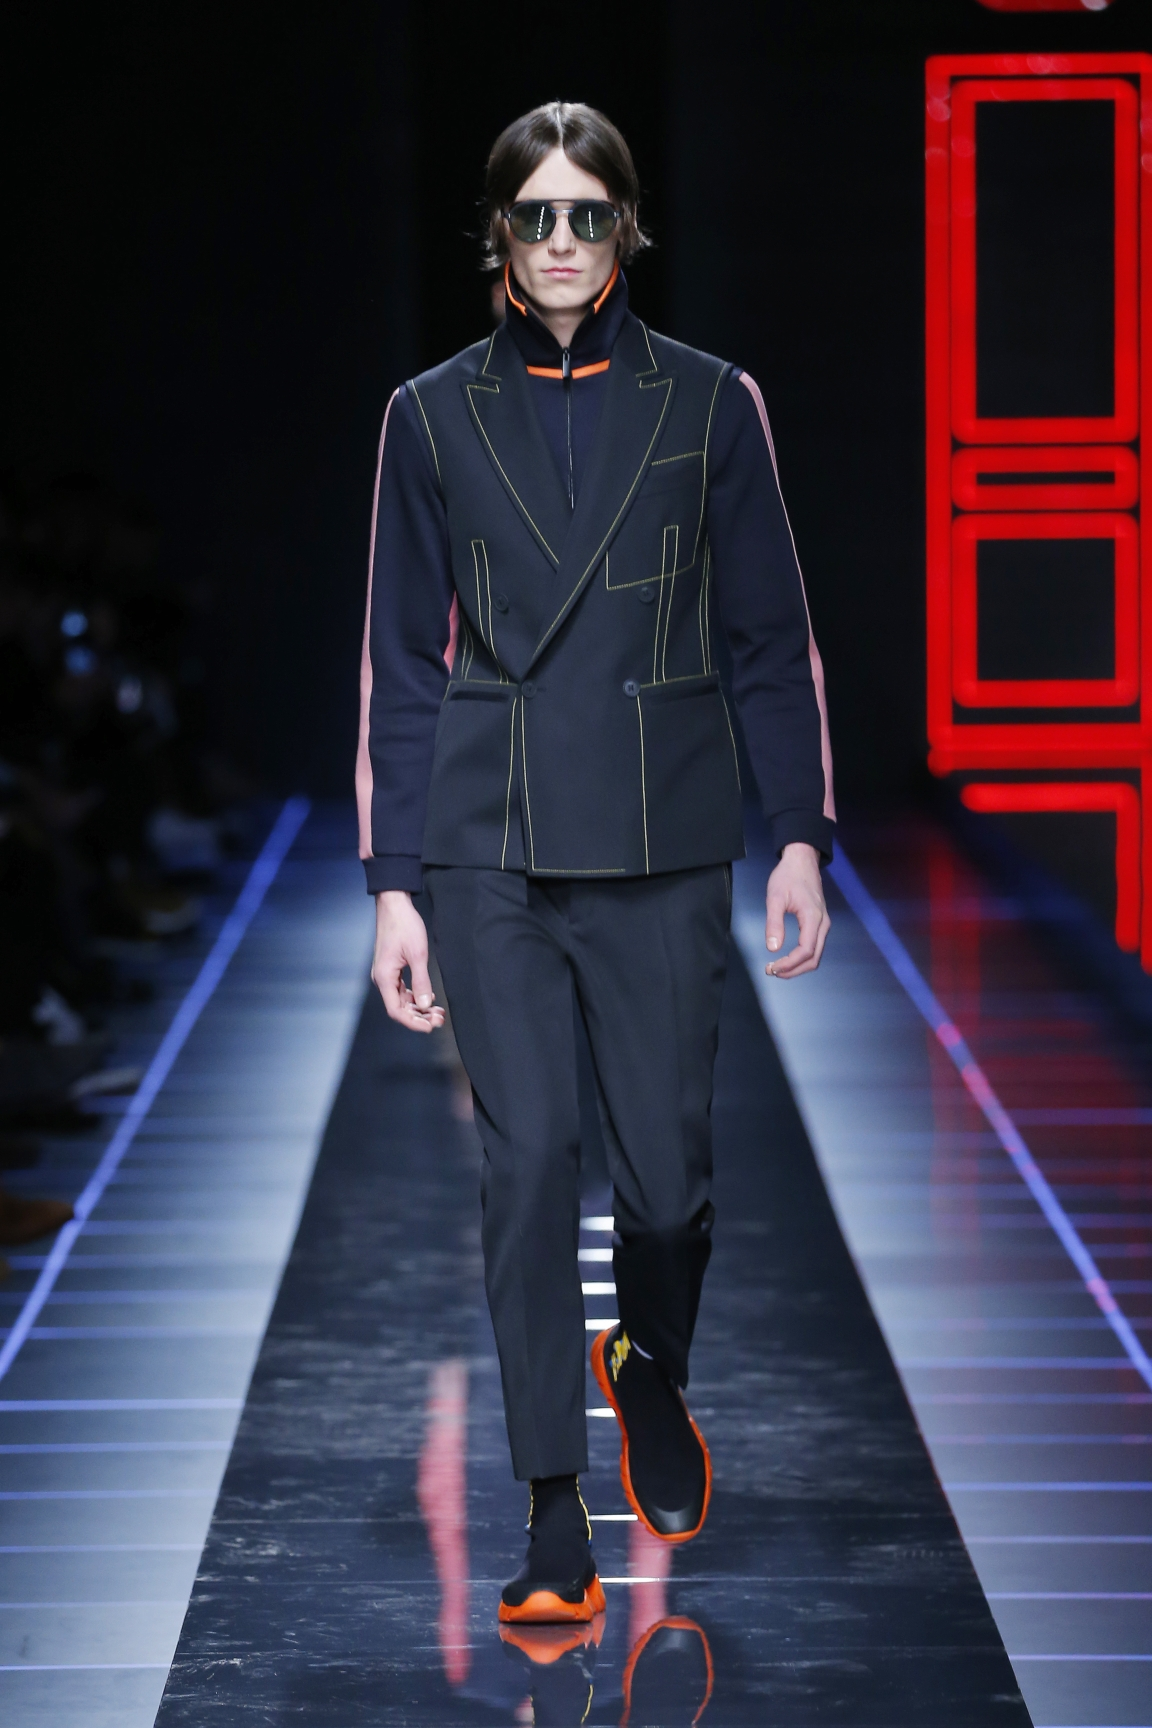 fendi-men-fw16-17-look-35